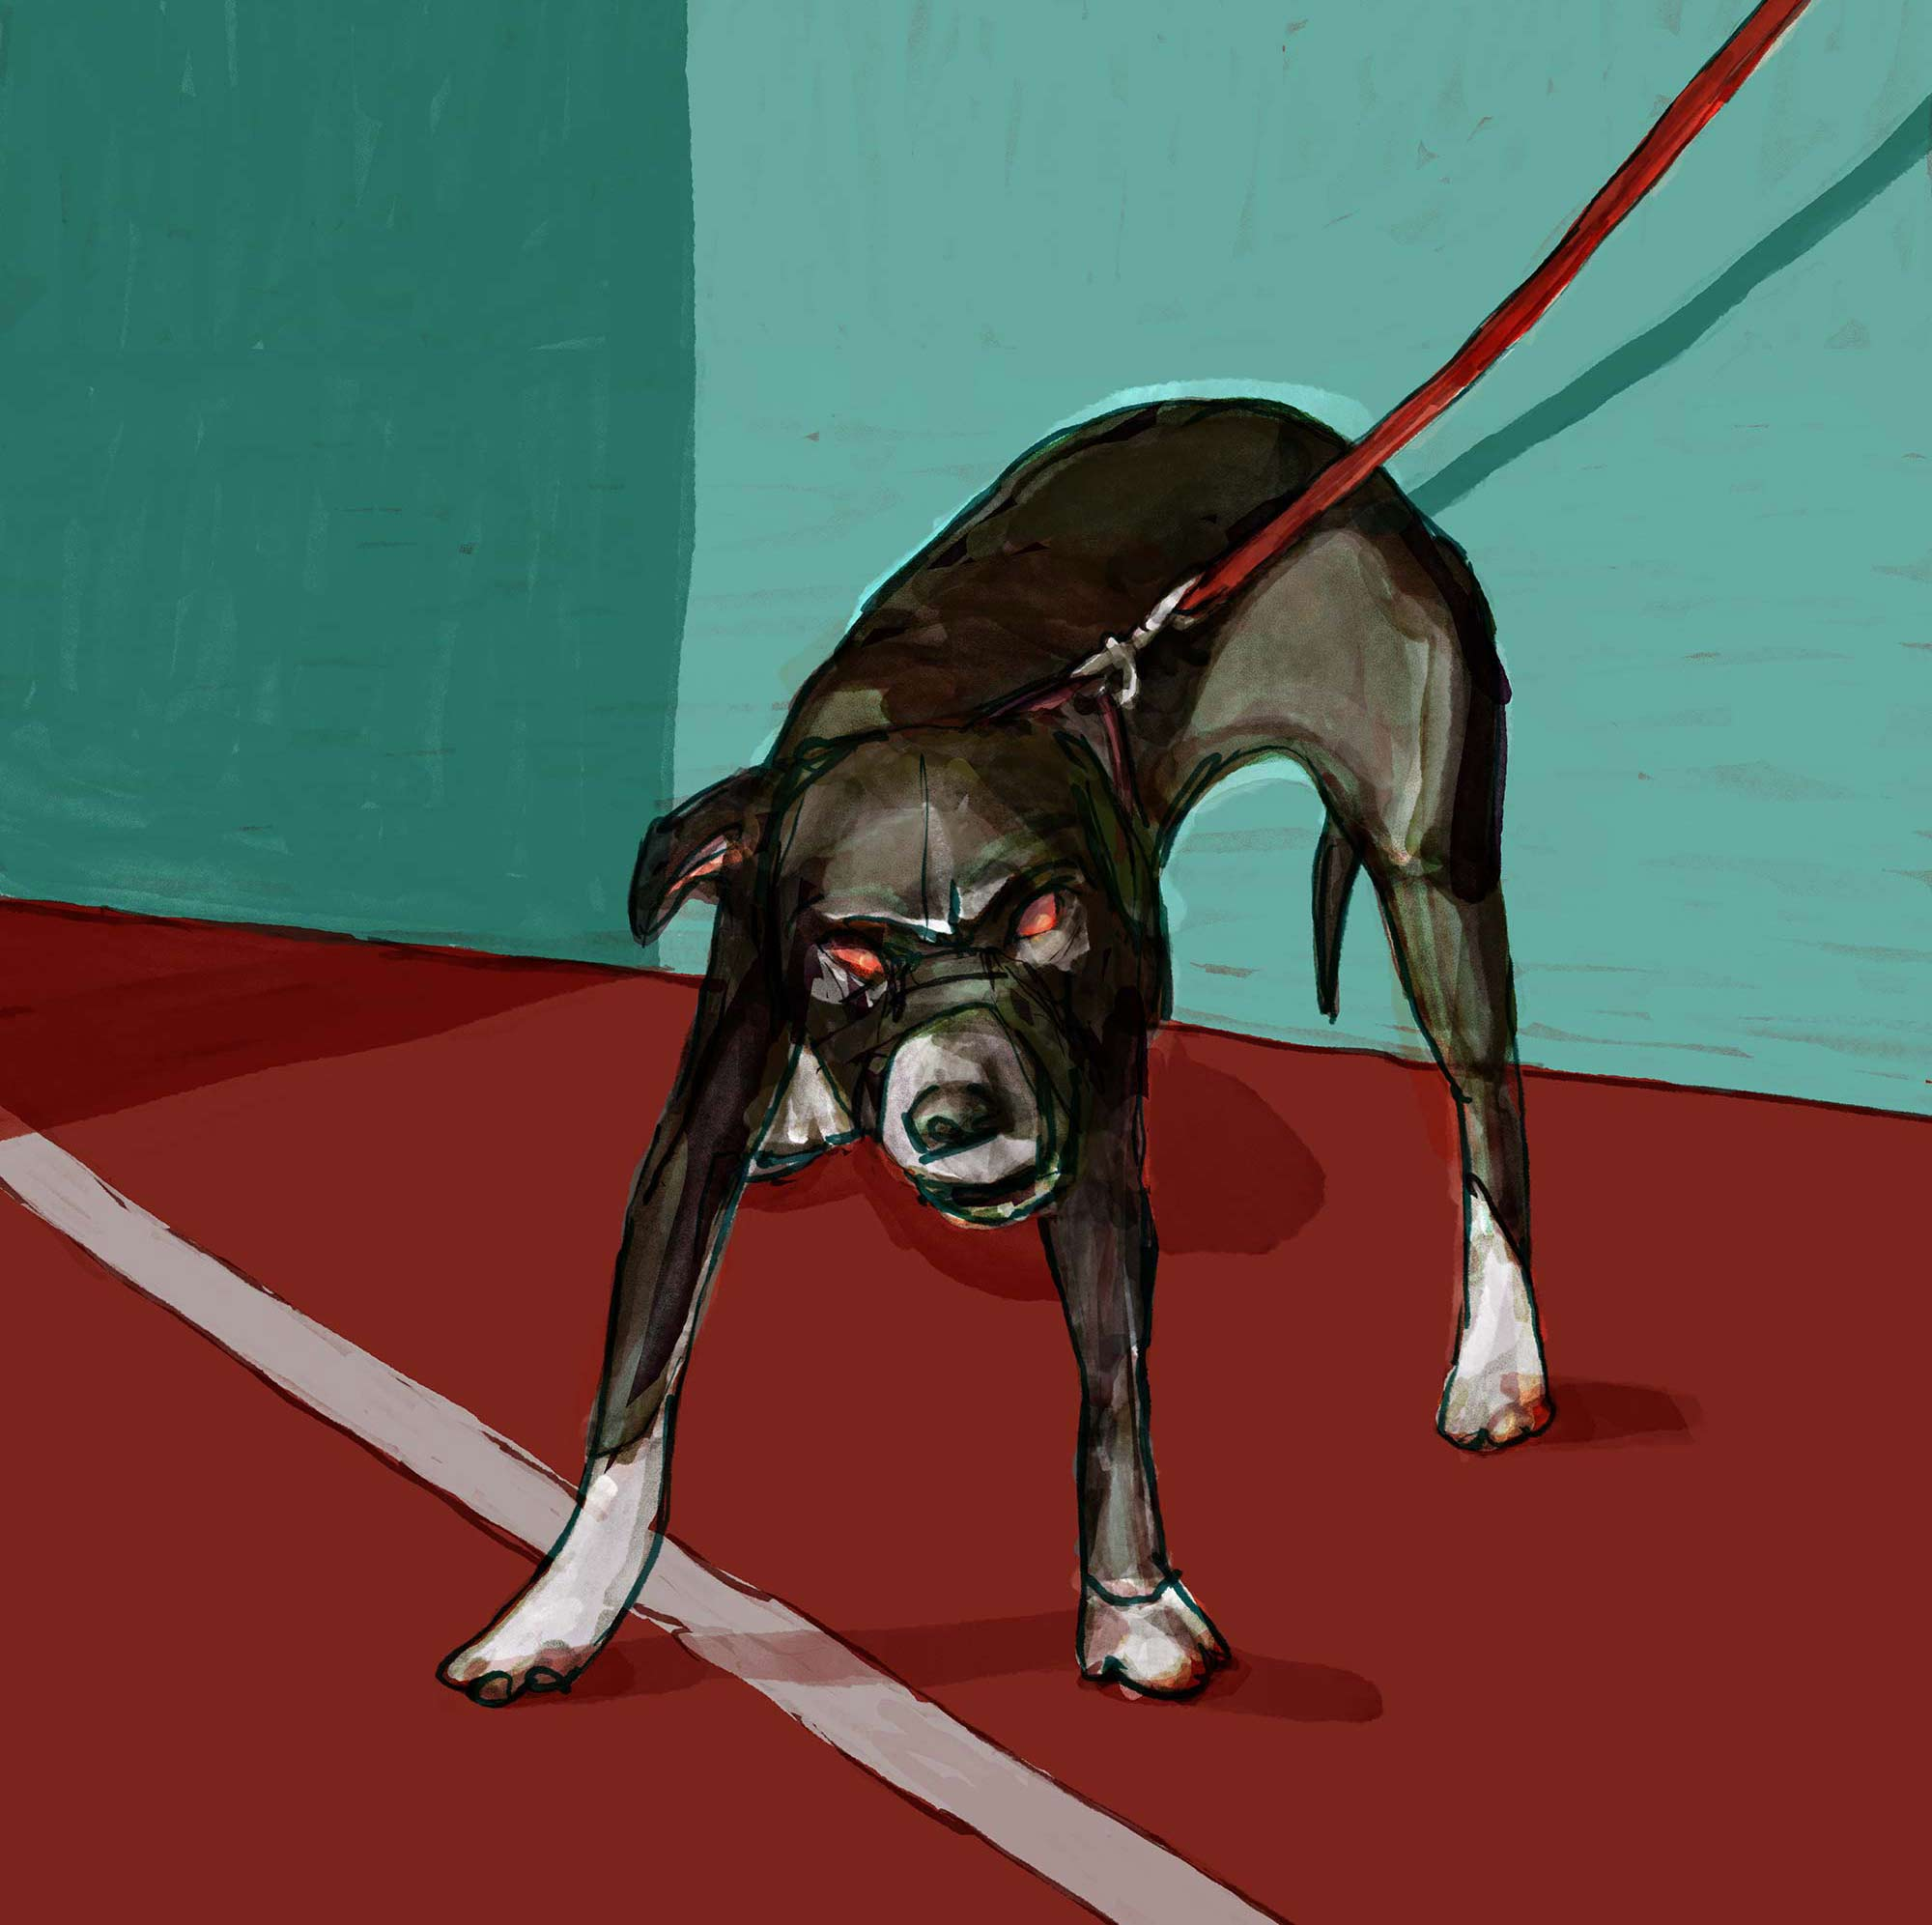 Mario Jodra illustration - A Dog - Un Perro